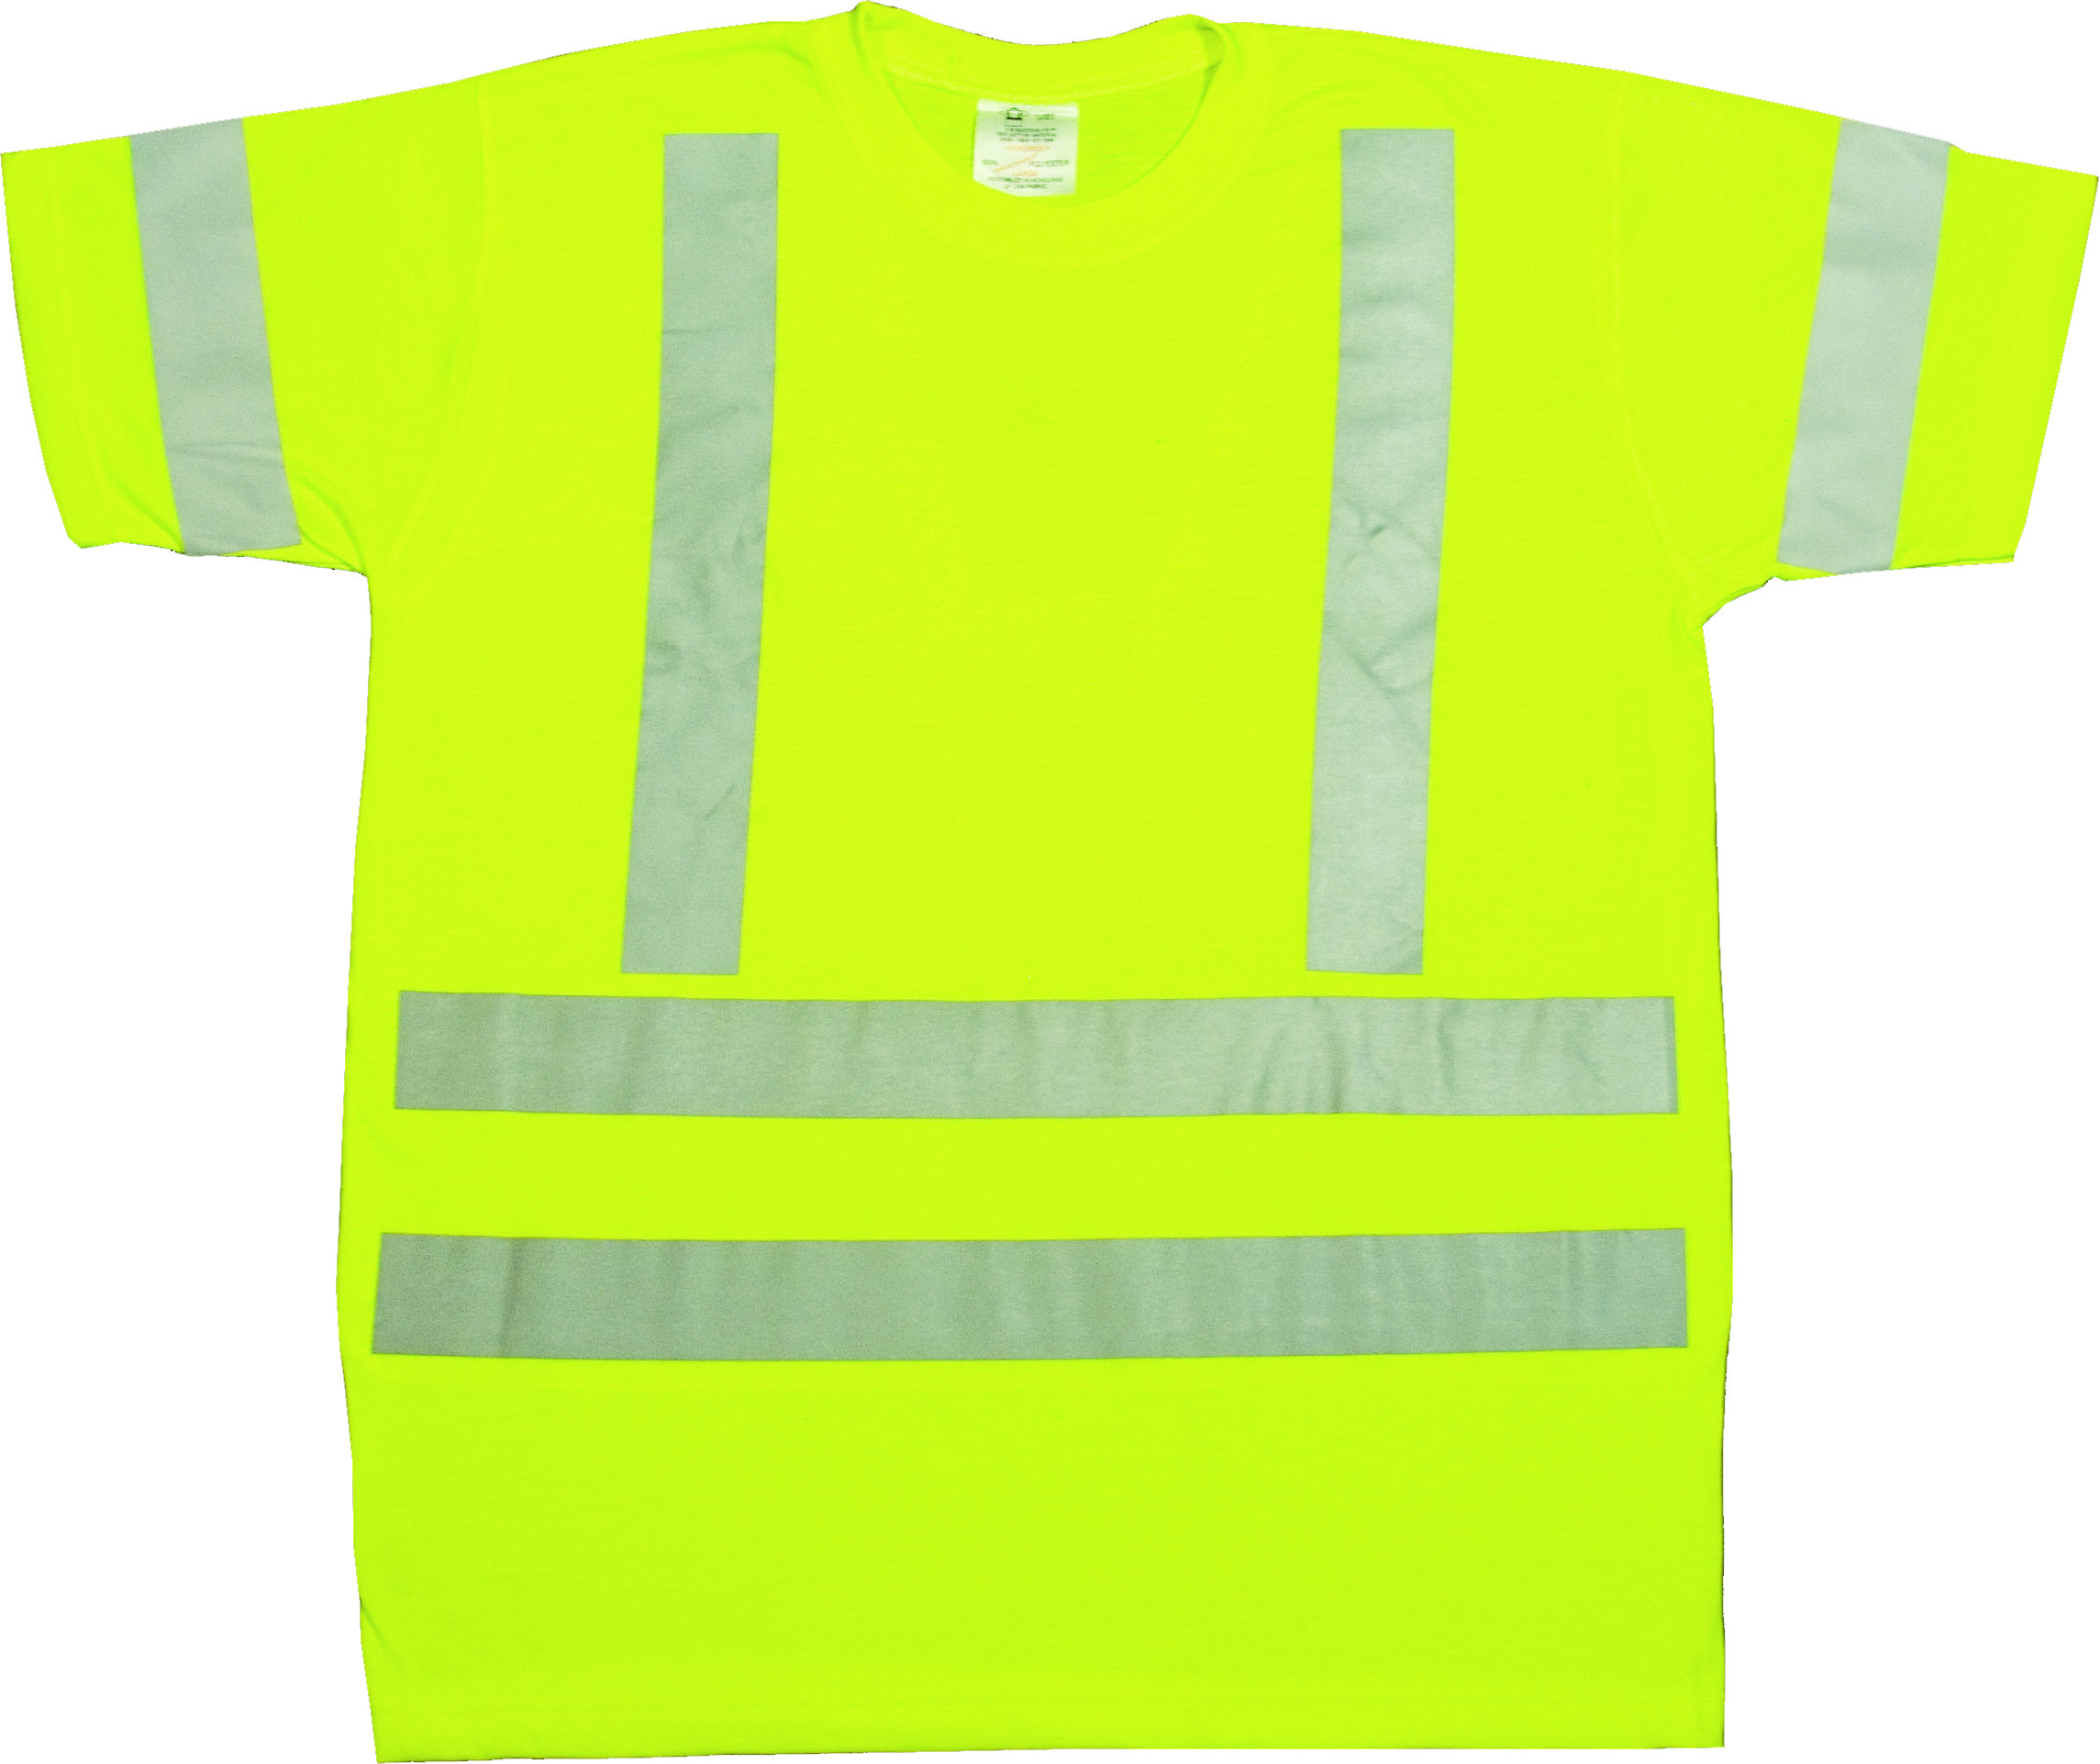 96002-0-107, ANSI Class 3 Durable Flame Retardant T-Shirt, Lime, 4XLarge, Mutual Industries